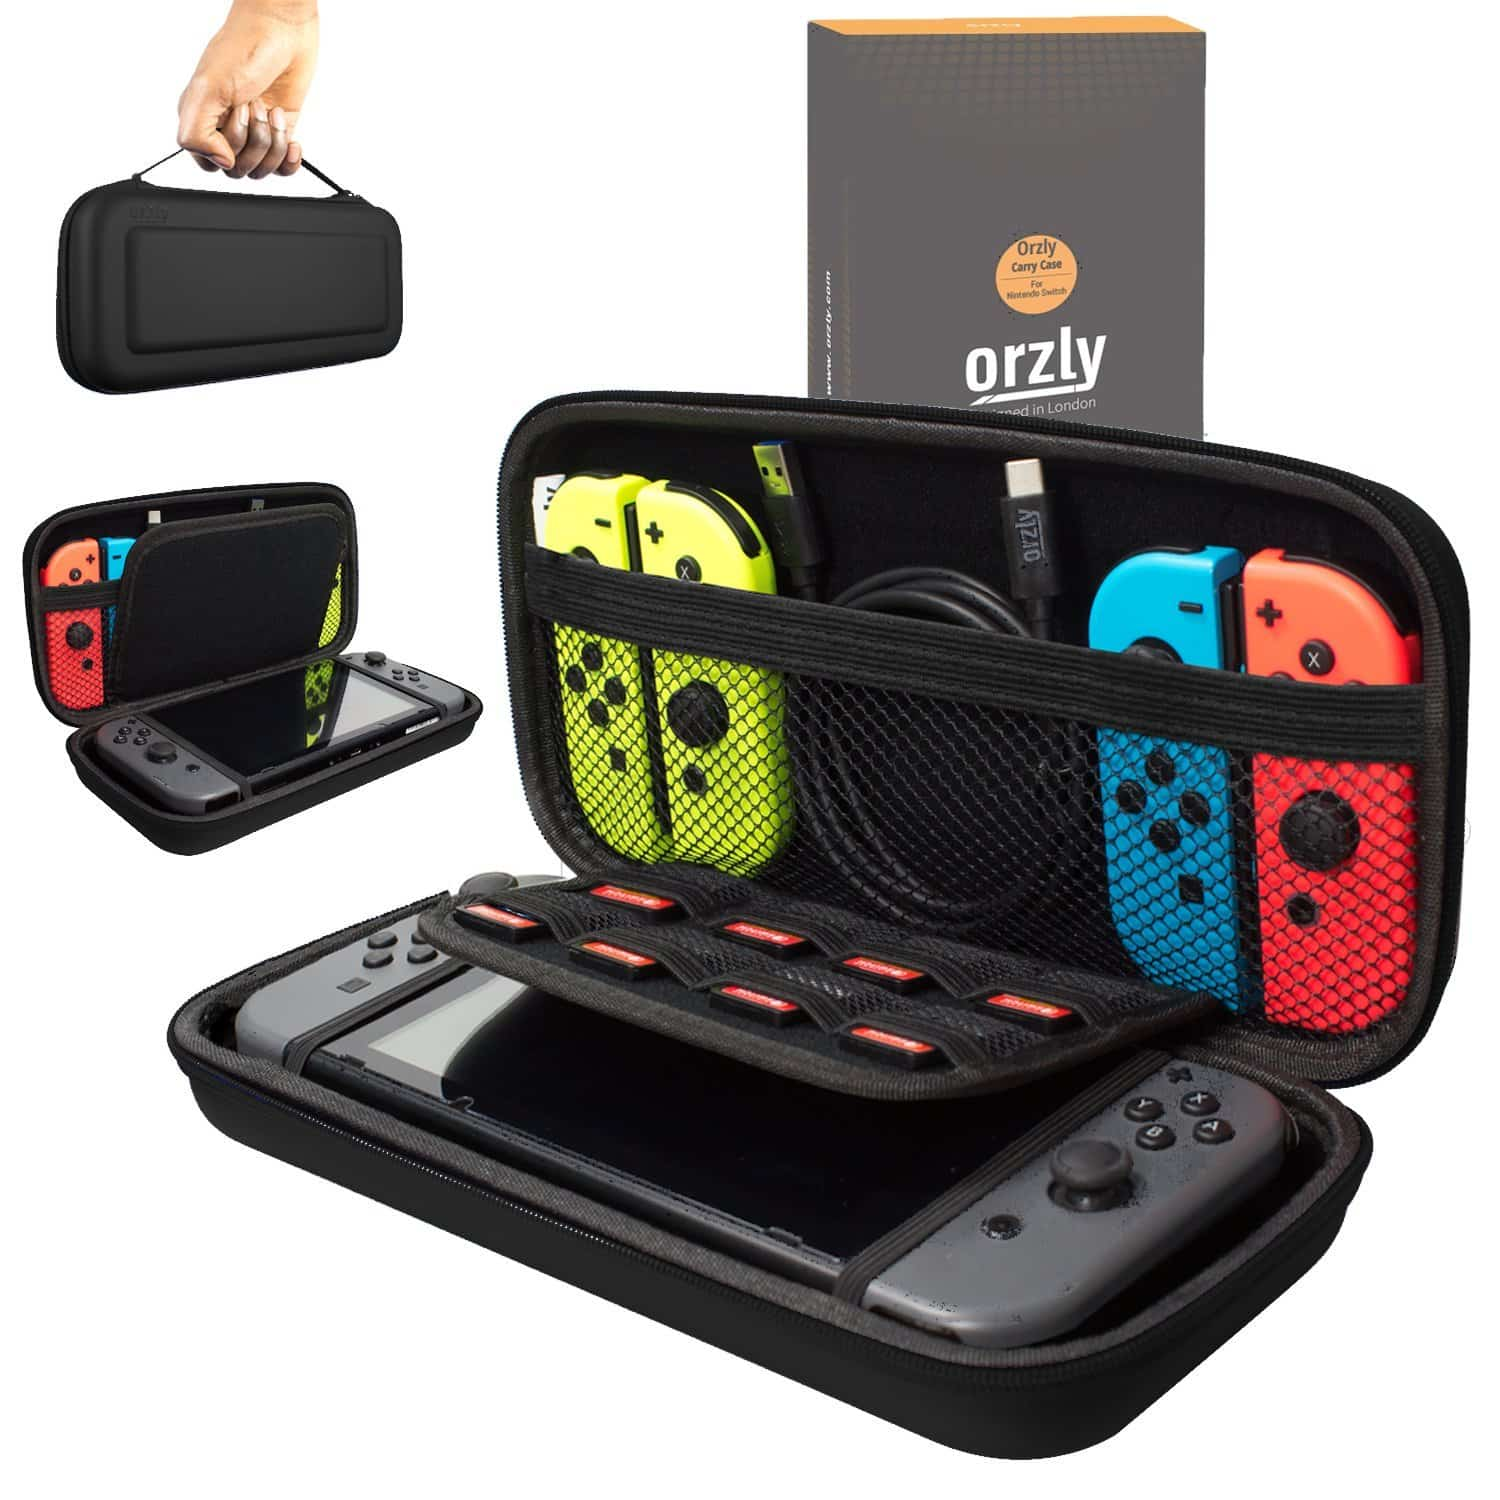 Orzly - best switch case